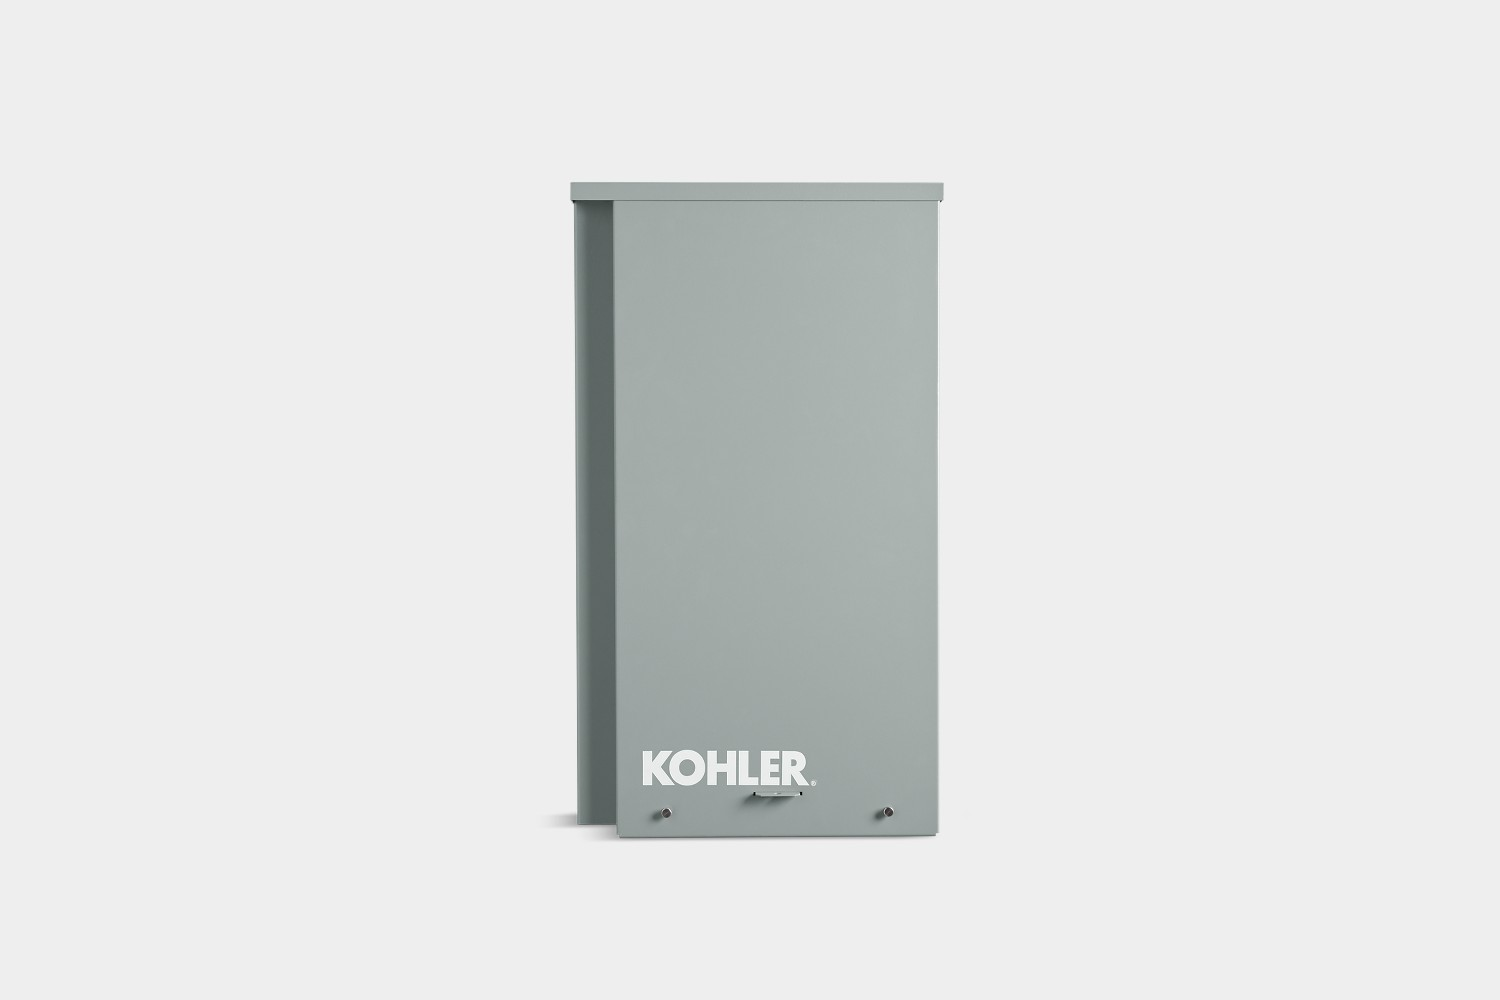 Kohler Generators Rxt Ats 100 Amp Service Entrance Automatic For Transfer Switch Wiring Diagram